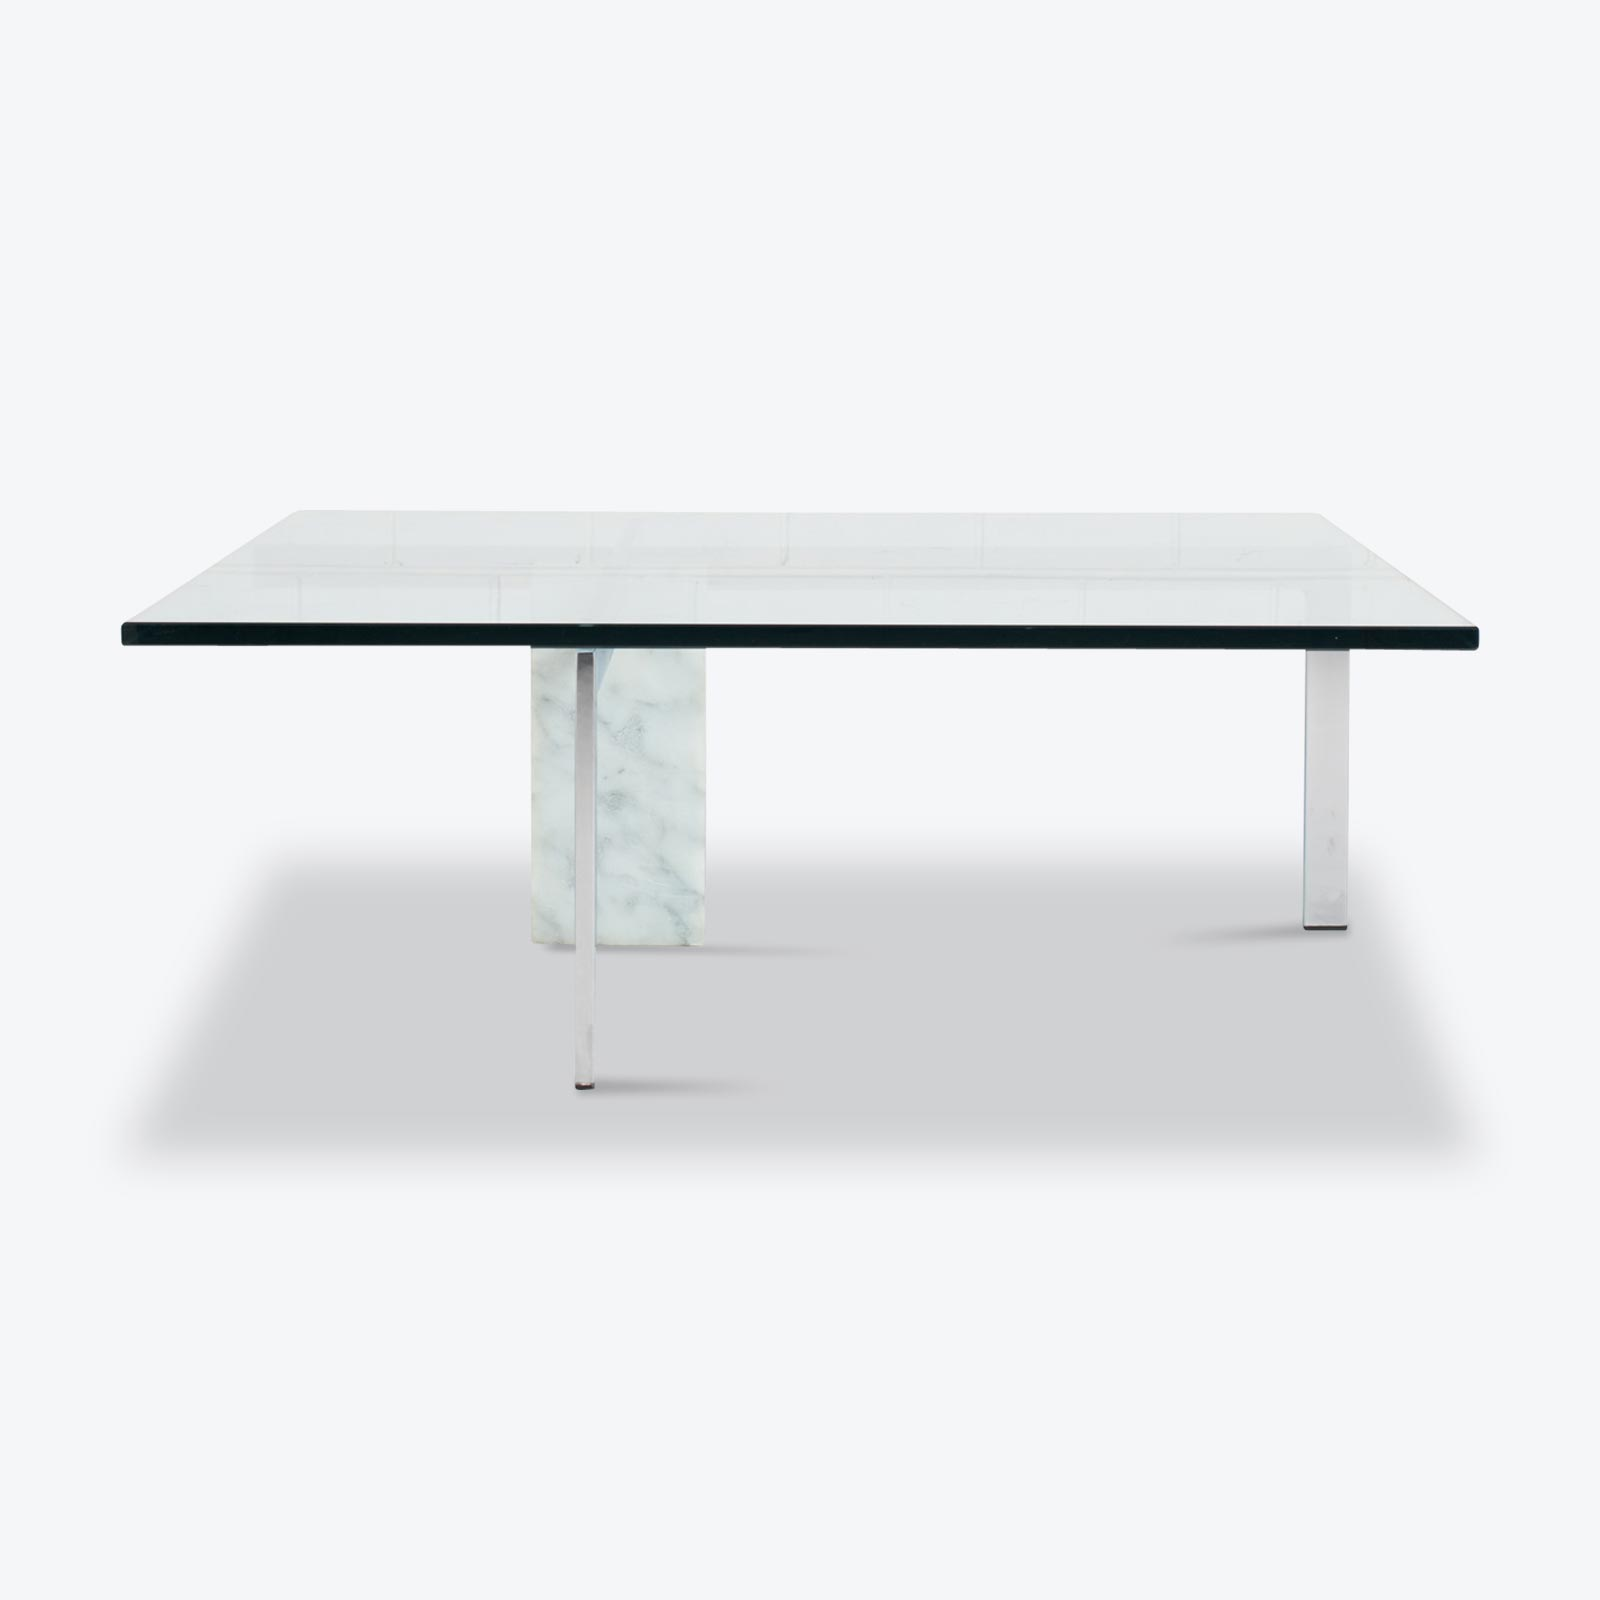 Kw 1 Coffee Table By Hank Kwint For Metaform In Glass With White Marble Base And Chrome 1970s Nethelands 01.jpg